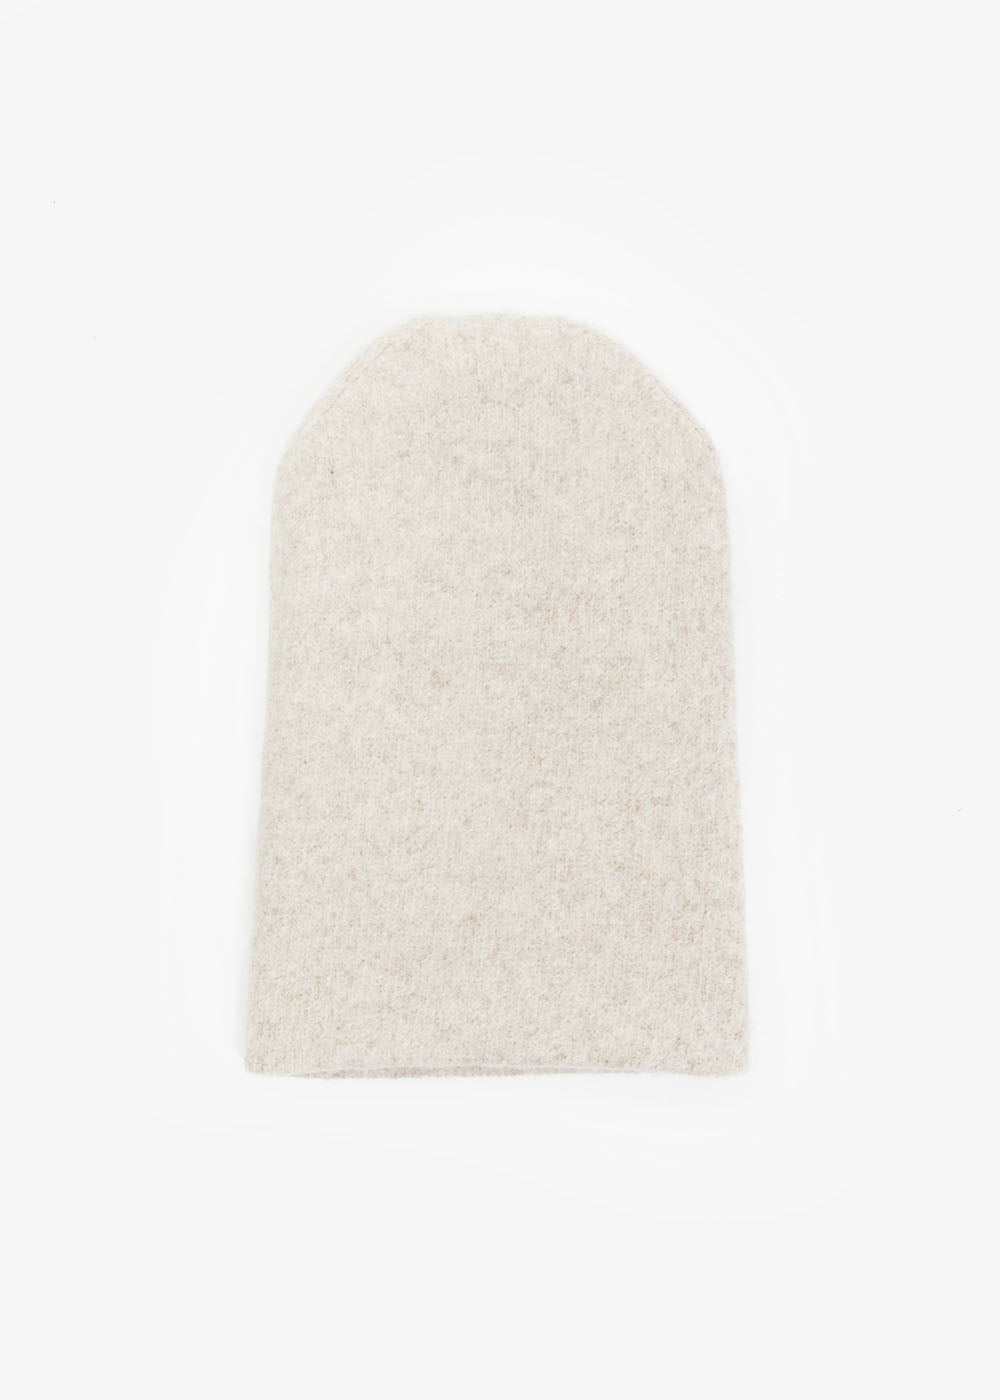 Lauren Manoogian Hessian Carpenter Hat — Shop sustainable fashion and slow fashion at New Classics Studios